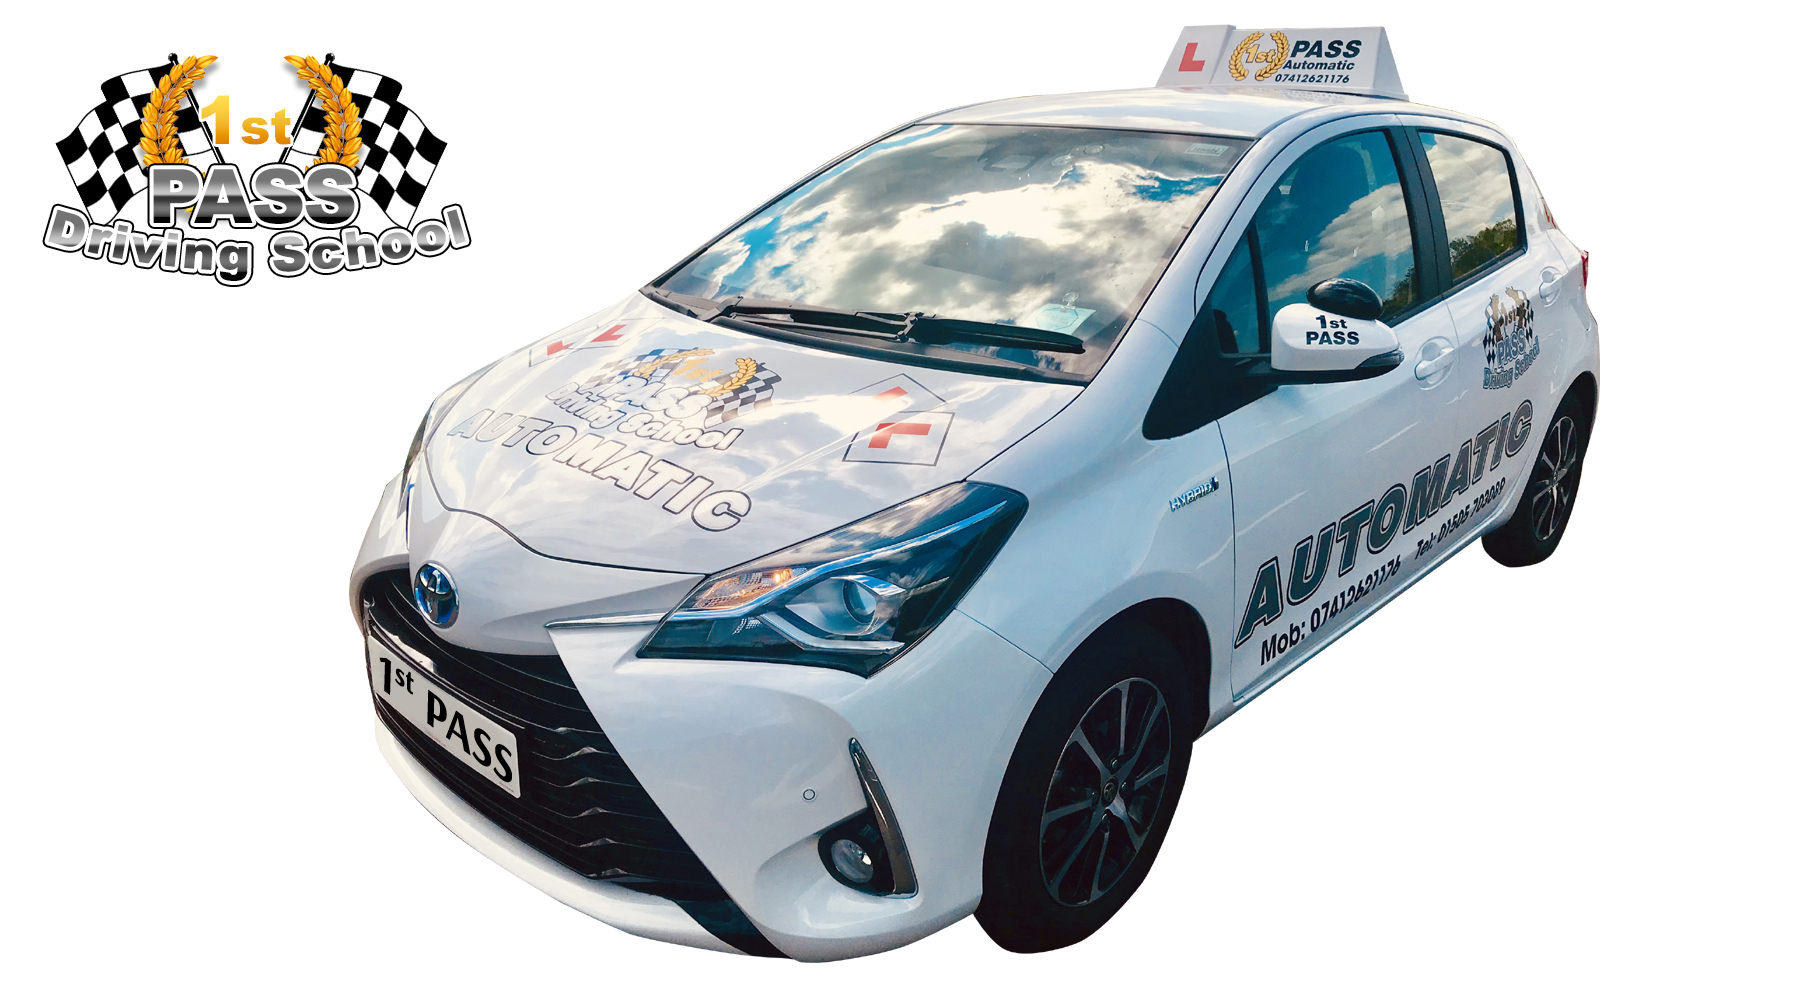 1st Pass Driving School – Renfrewshire's Automatic Driving School